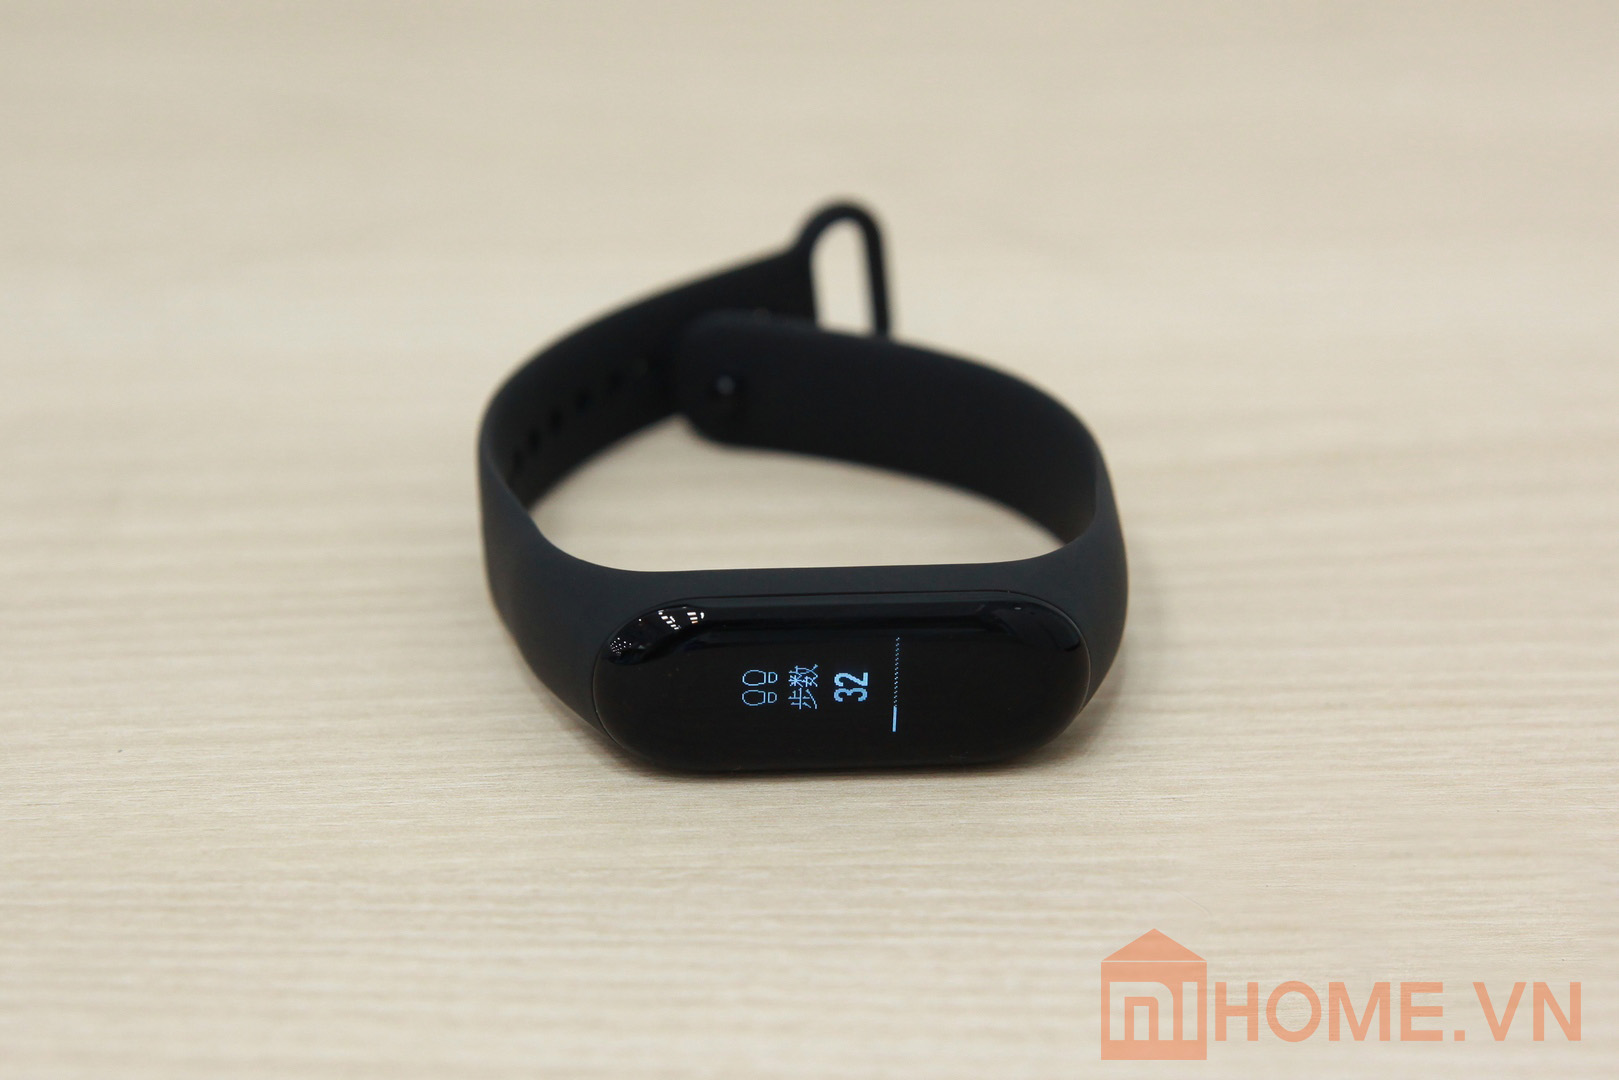 vong deo tay miband3 7